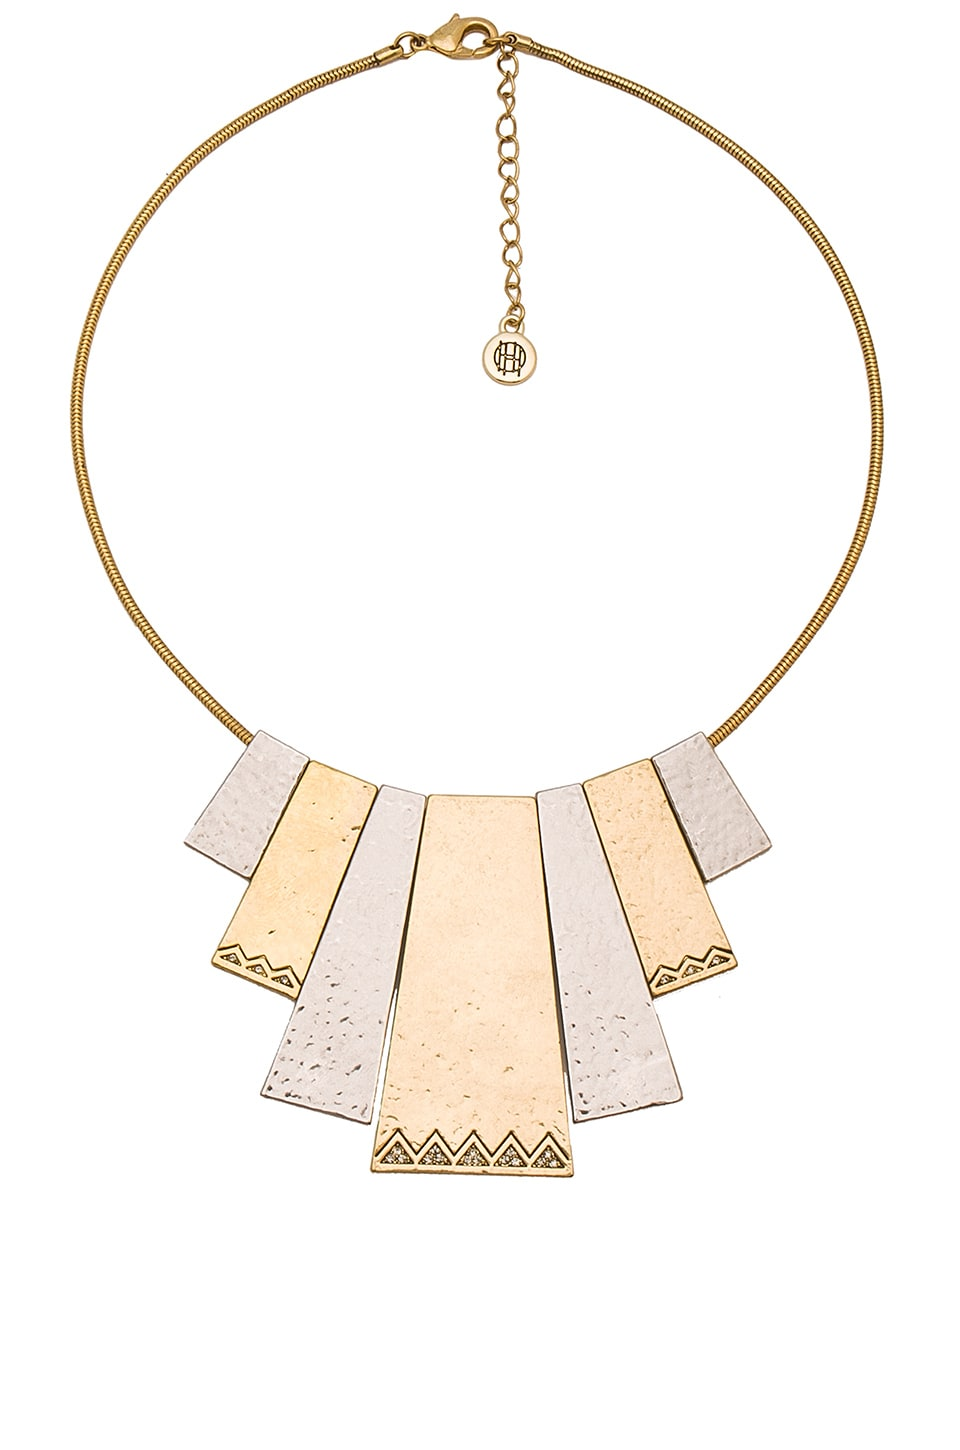 House of Harlow 1960 Scutum Statement Necklace in Gold & Silver